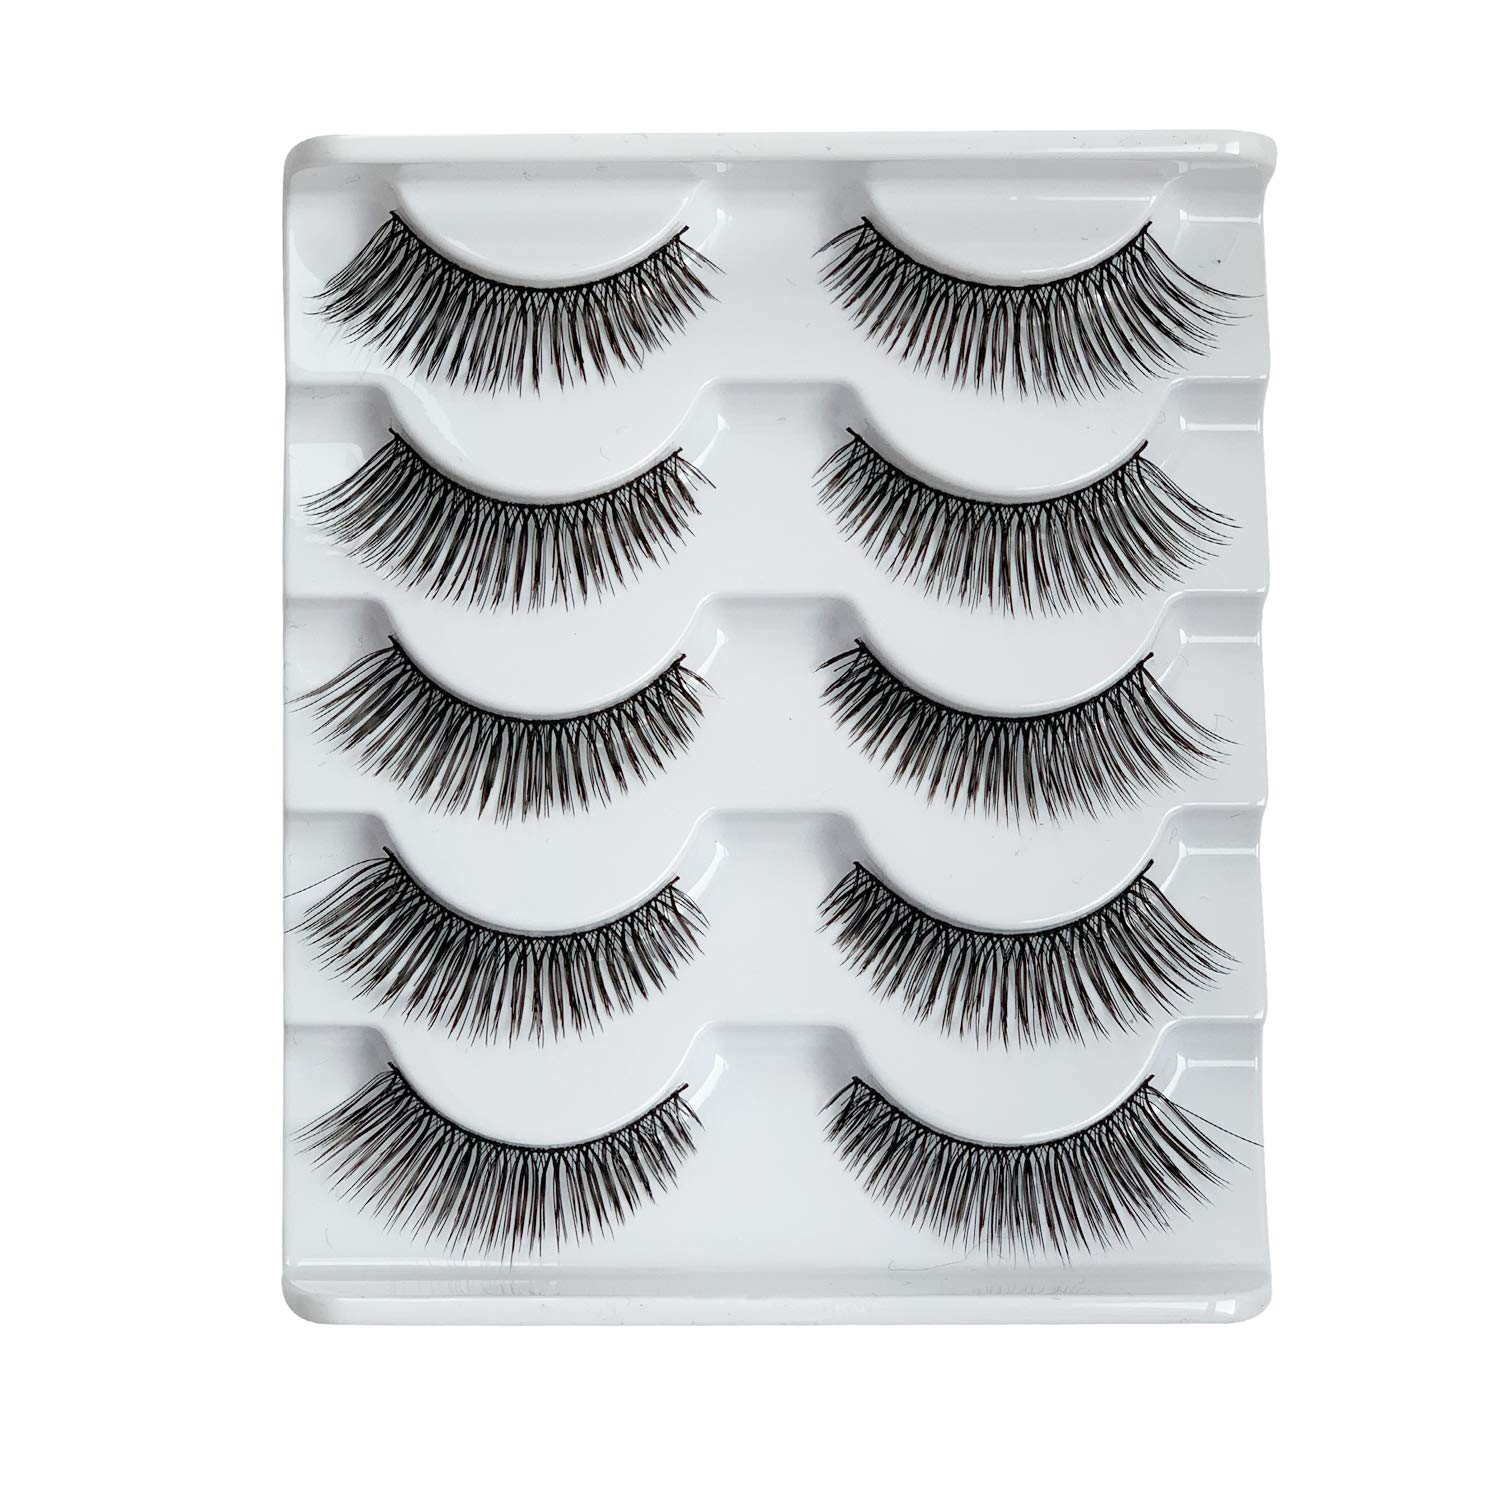 ALICE False Eyelashes Tapered End Natural Wispy Lashes Multipack 5 Pairs